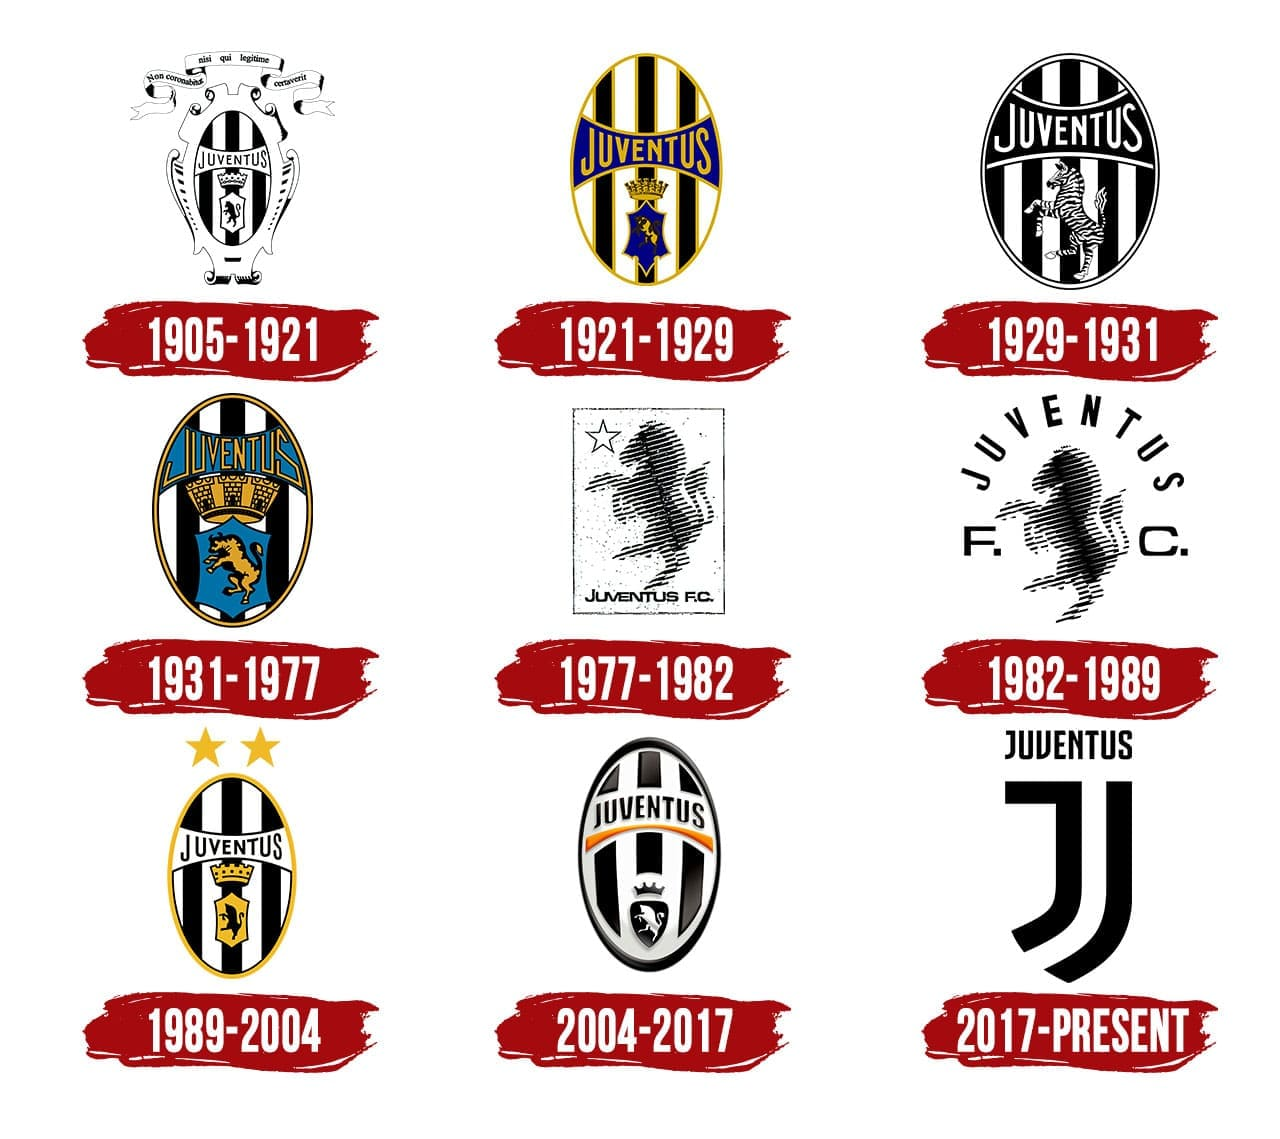 juventus logo history the most famous brands and company logos in the world juventus logo history the most famous